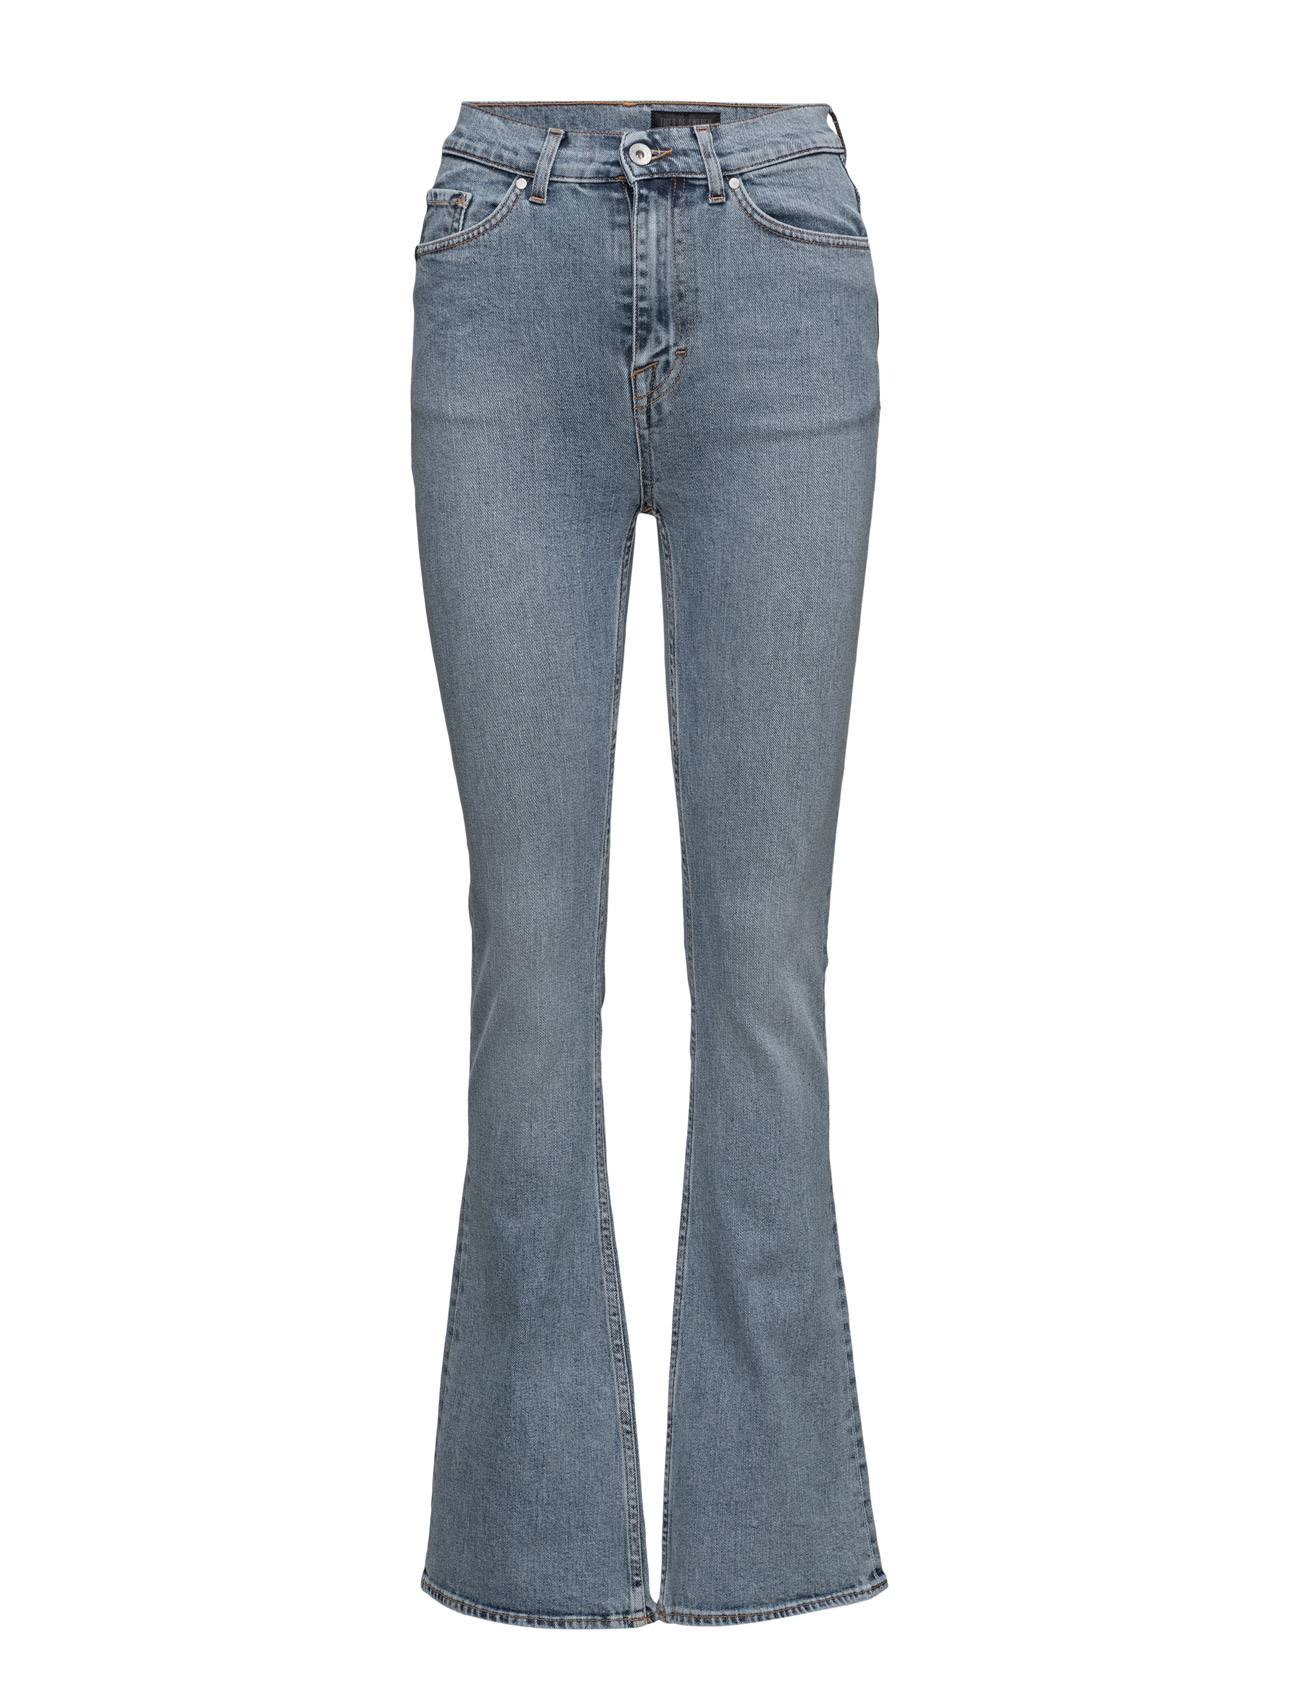 Tiger of Sweden Jeans Caprice